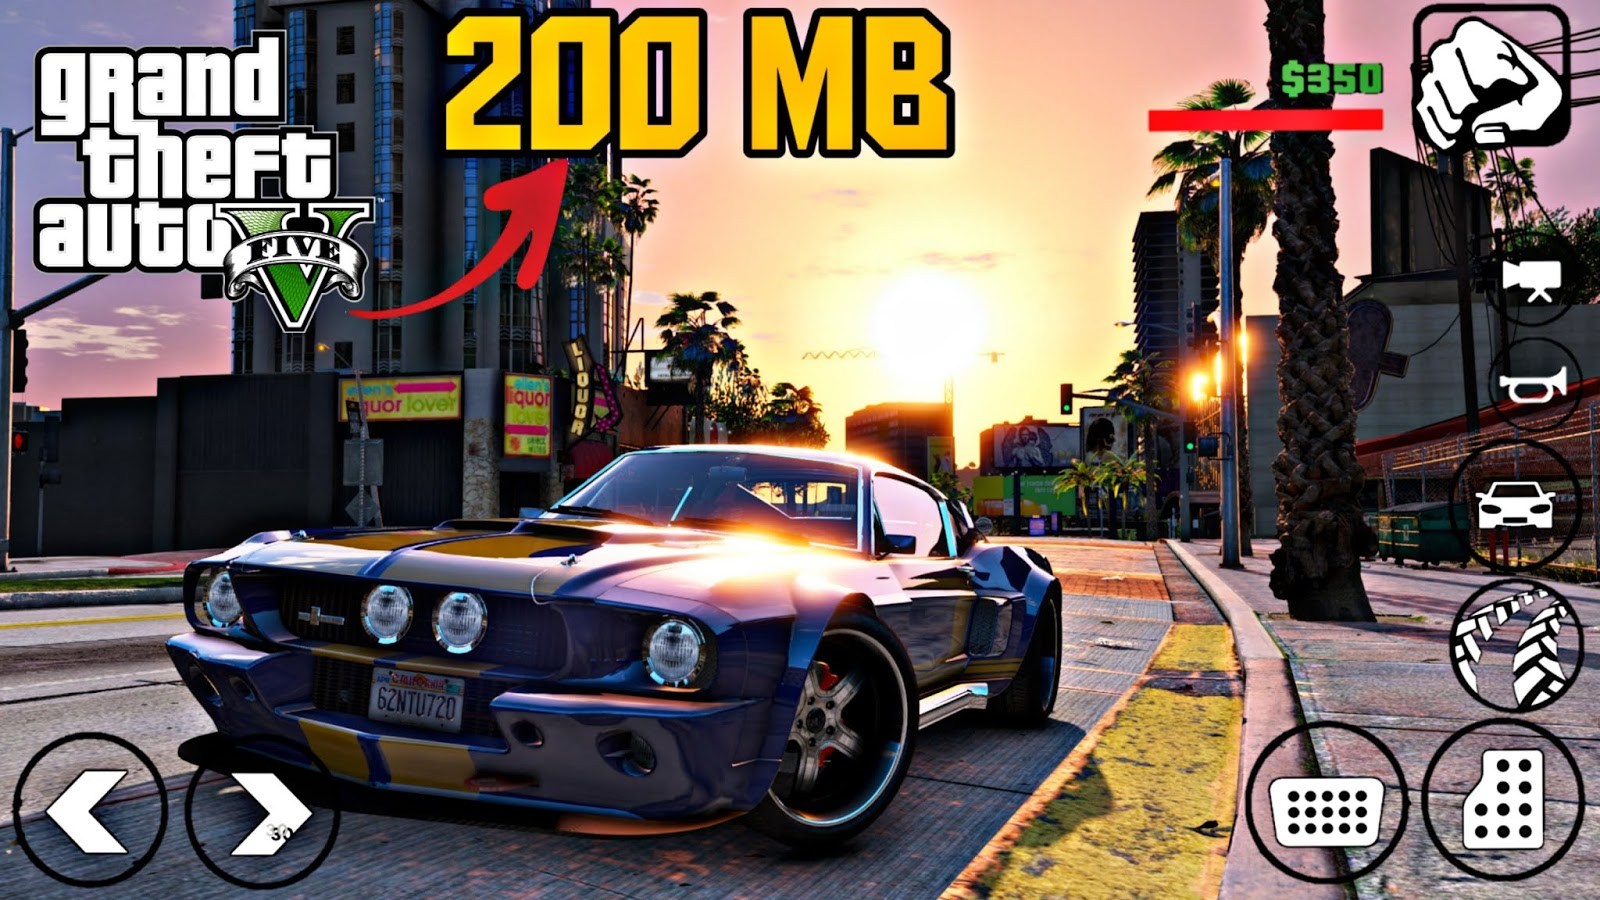 GTA 5 GRAPHICS MOD PACK 2019 - TECHNICAL EVER YT